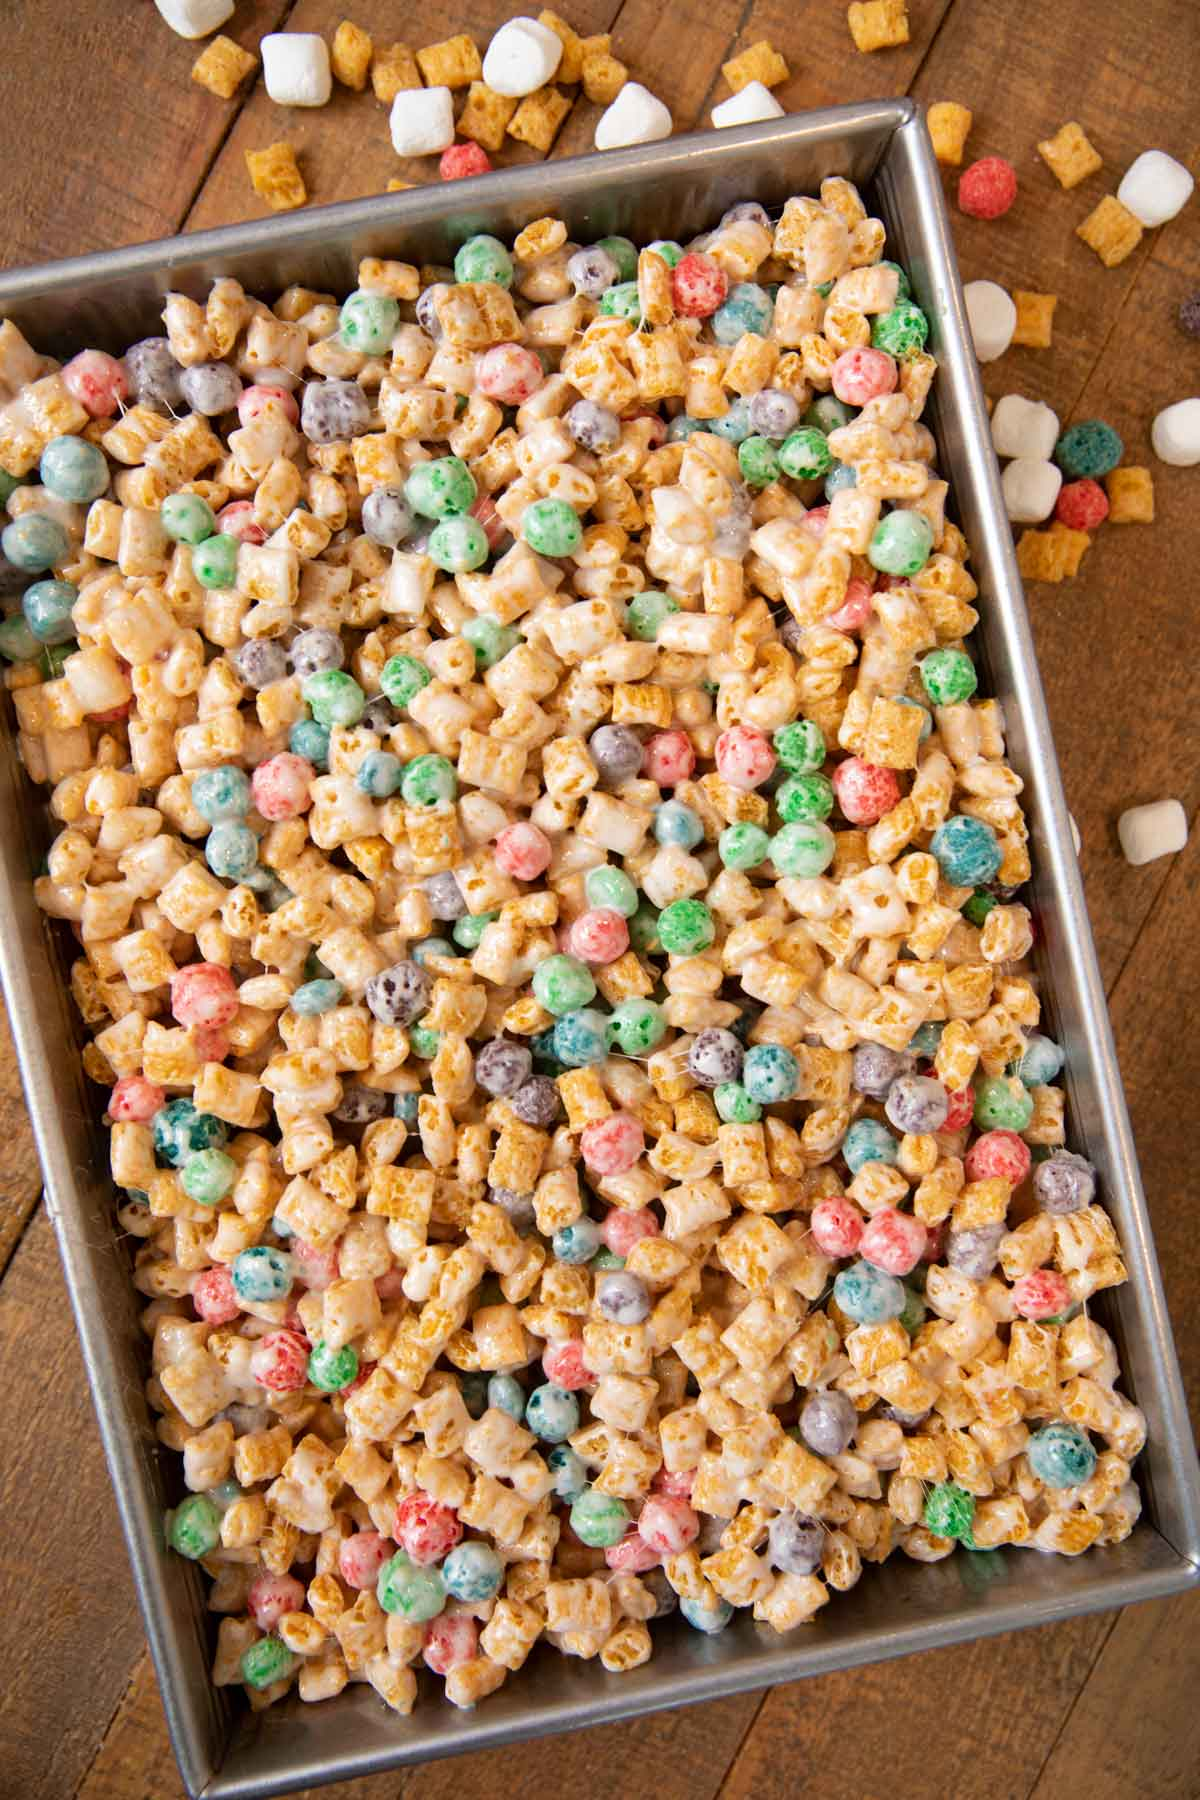 Crunchberry Cereal Marshmallow Bars in baking pan